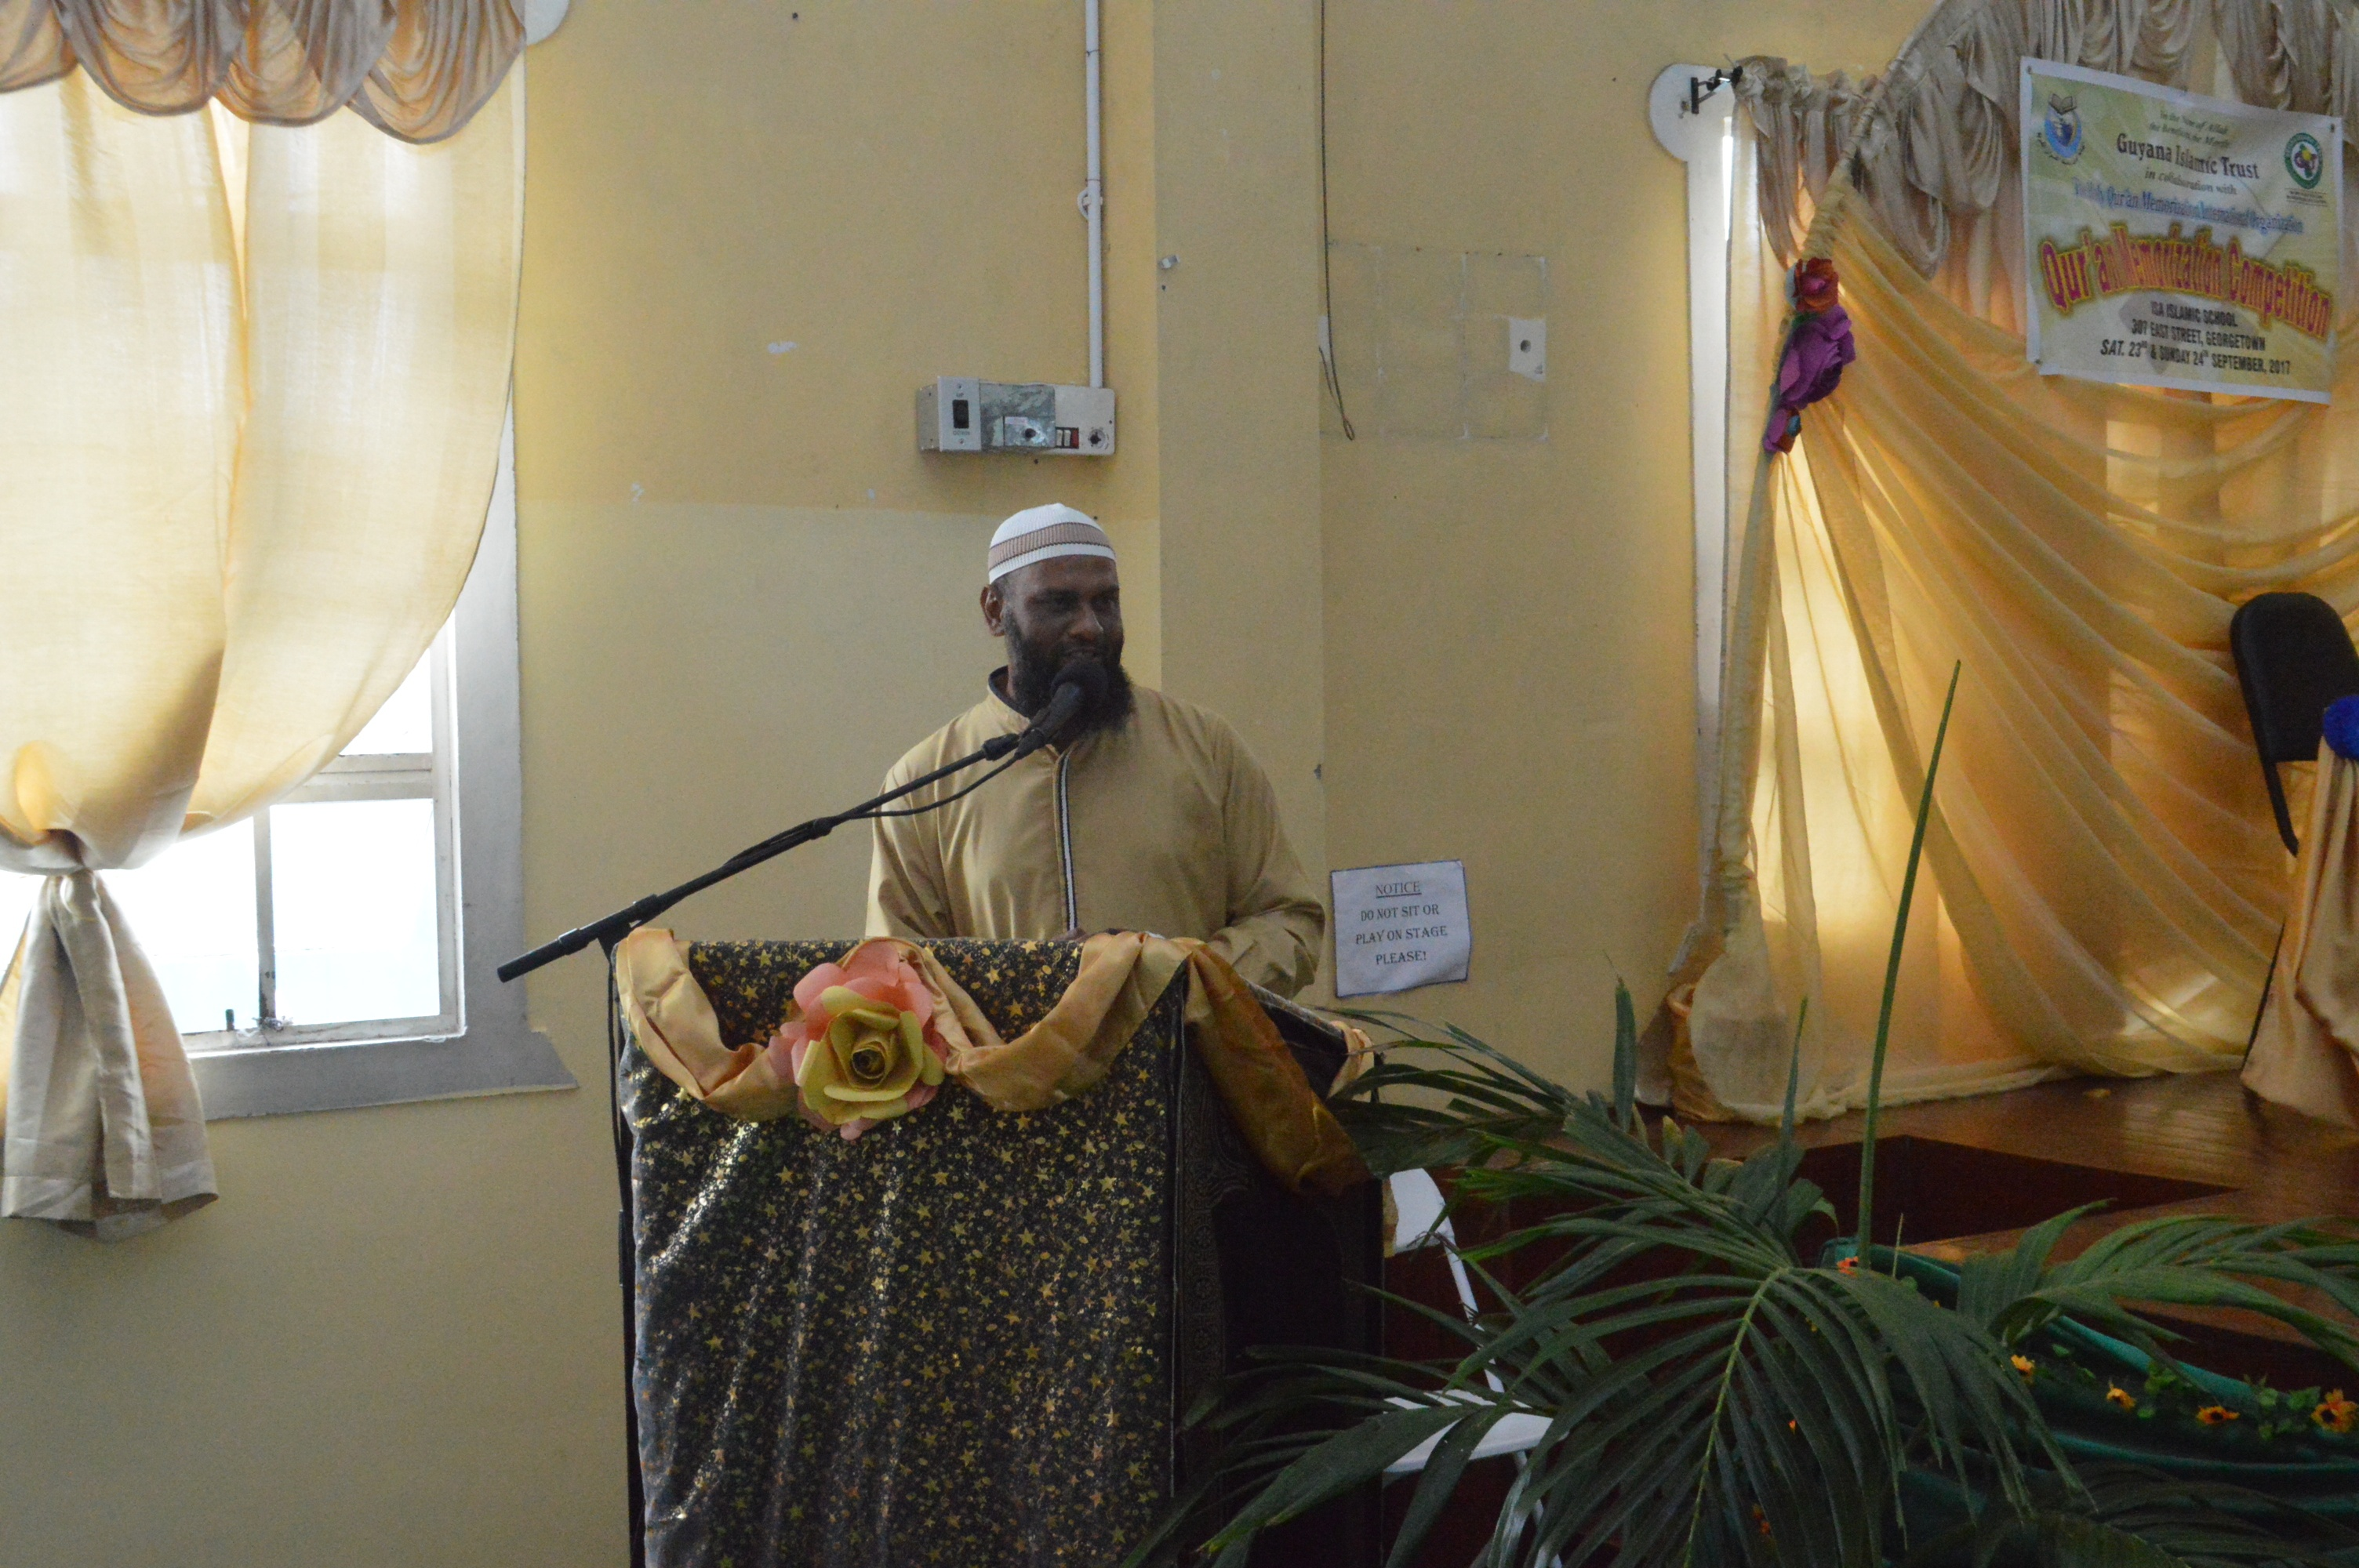 Br. Nezam Zaman- Chairperson of the proceedings